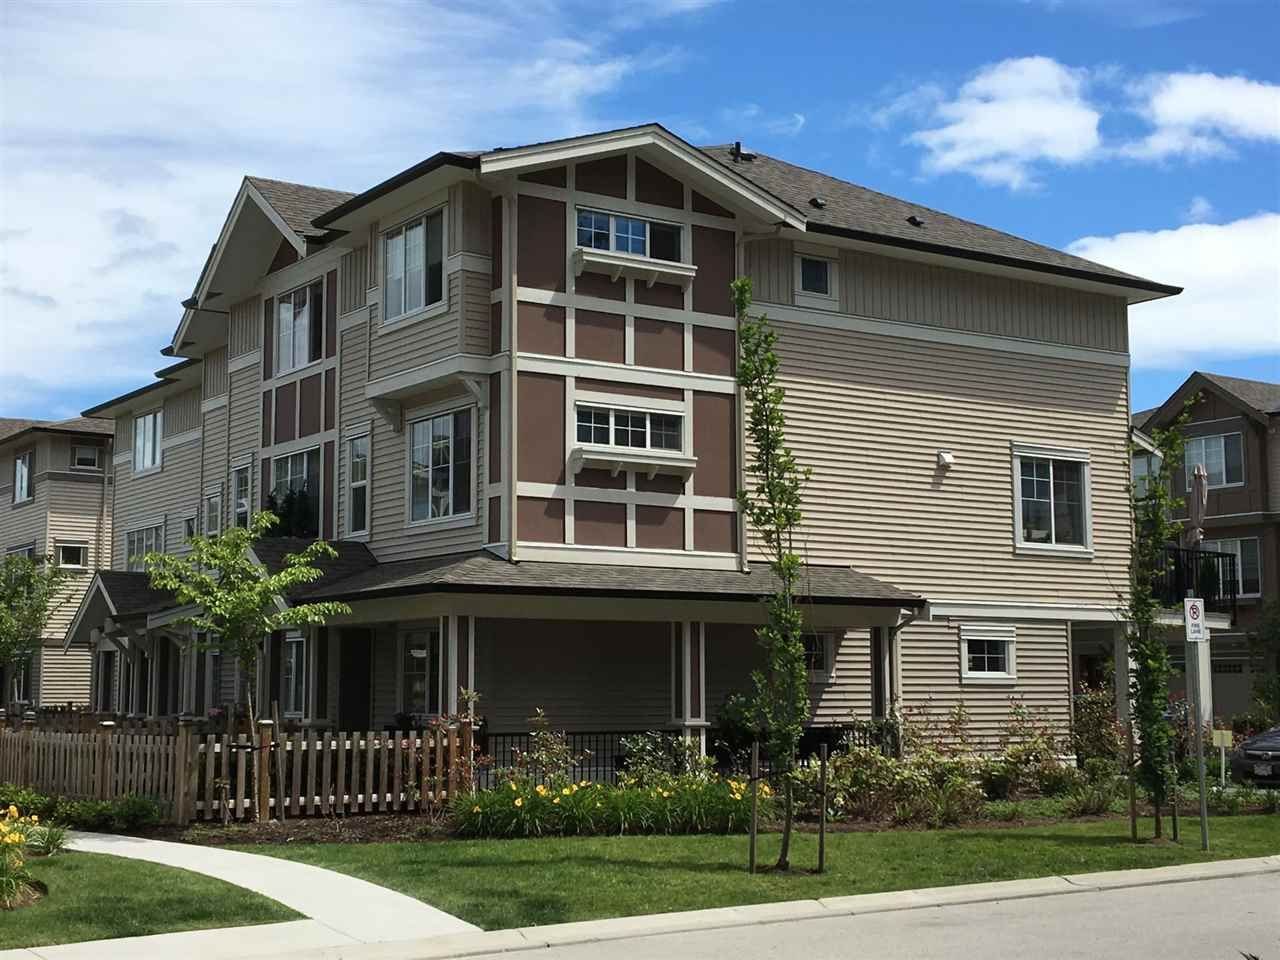 """Main Photo: 48 10151 240 Street in Maple Ridge: Albion Townhouse for sale in """"ALBION STATION"""" : MLS®# R2182569"""